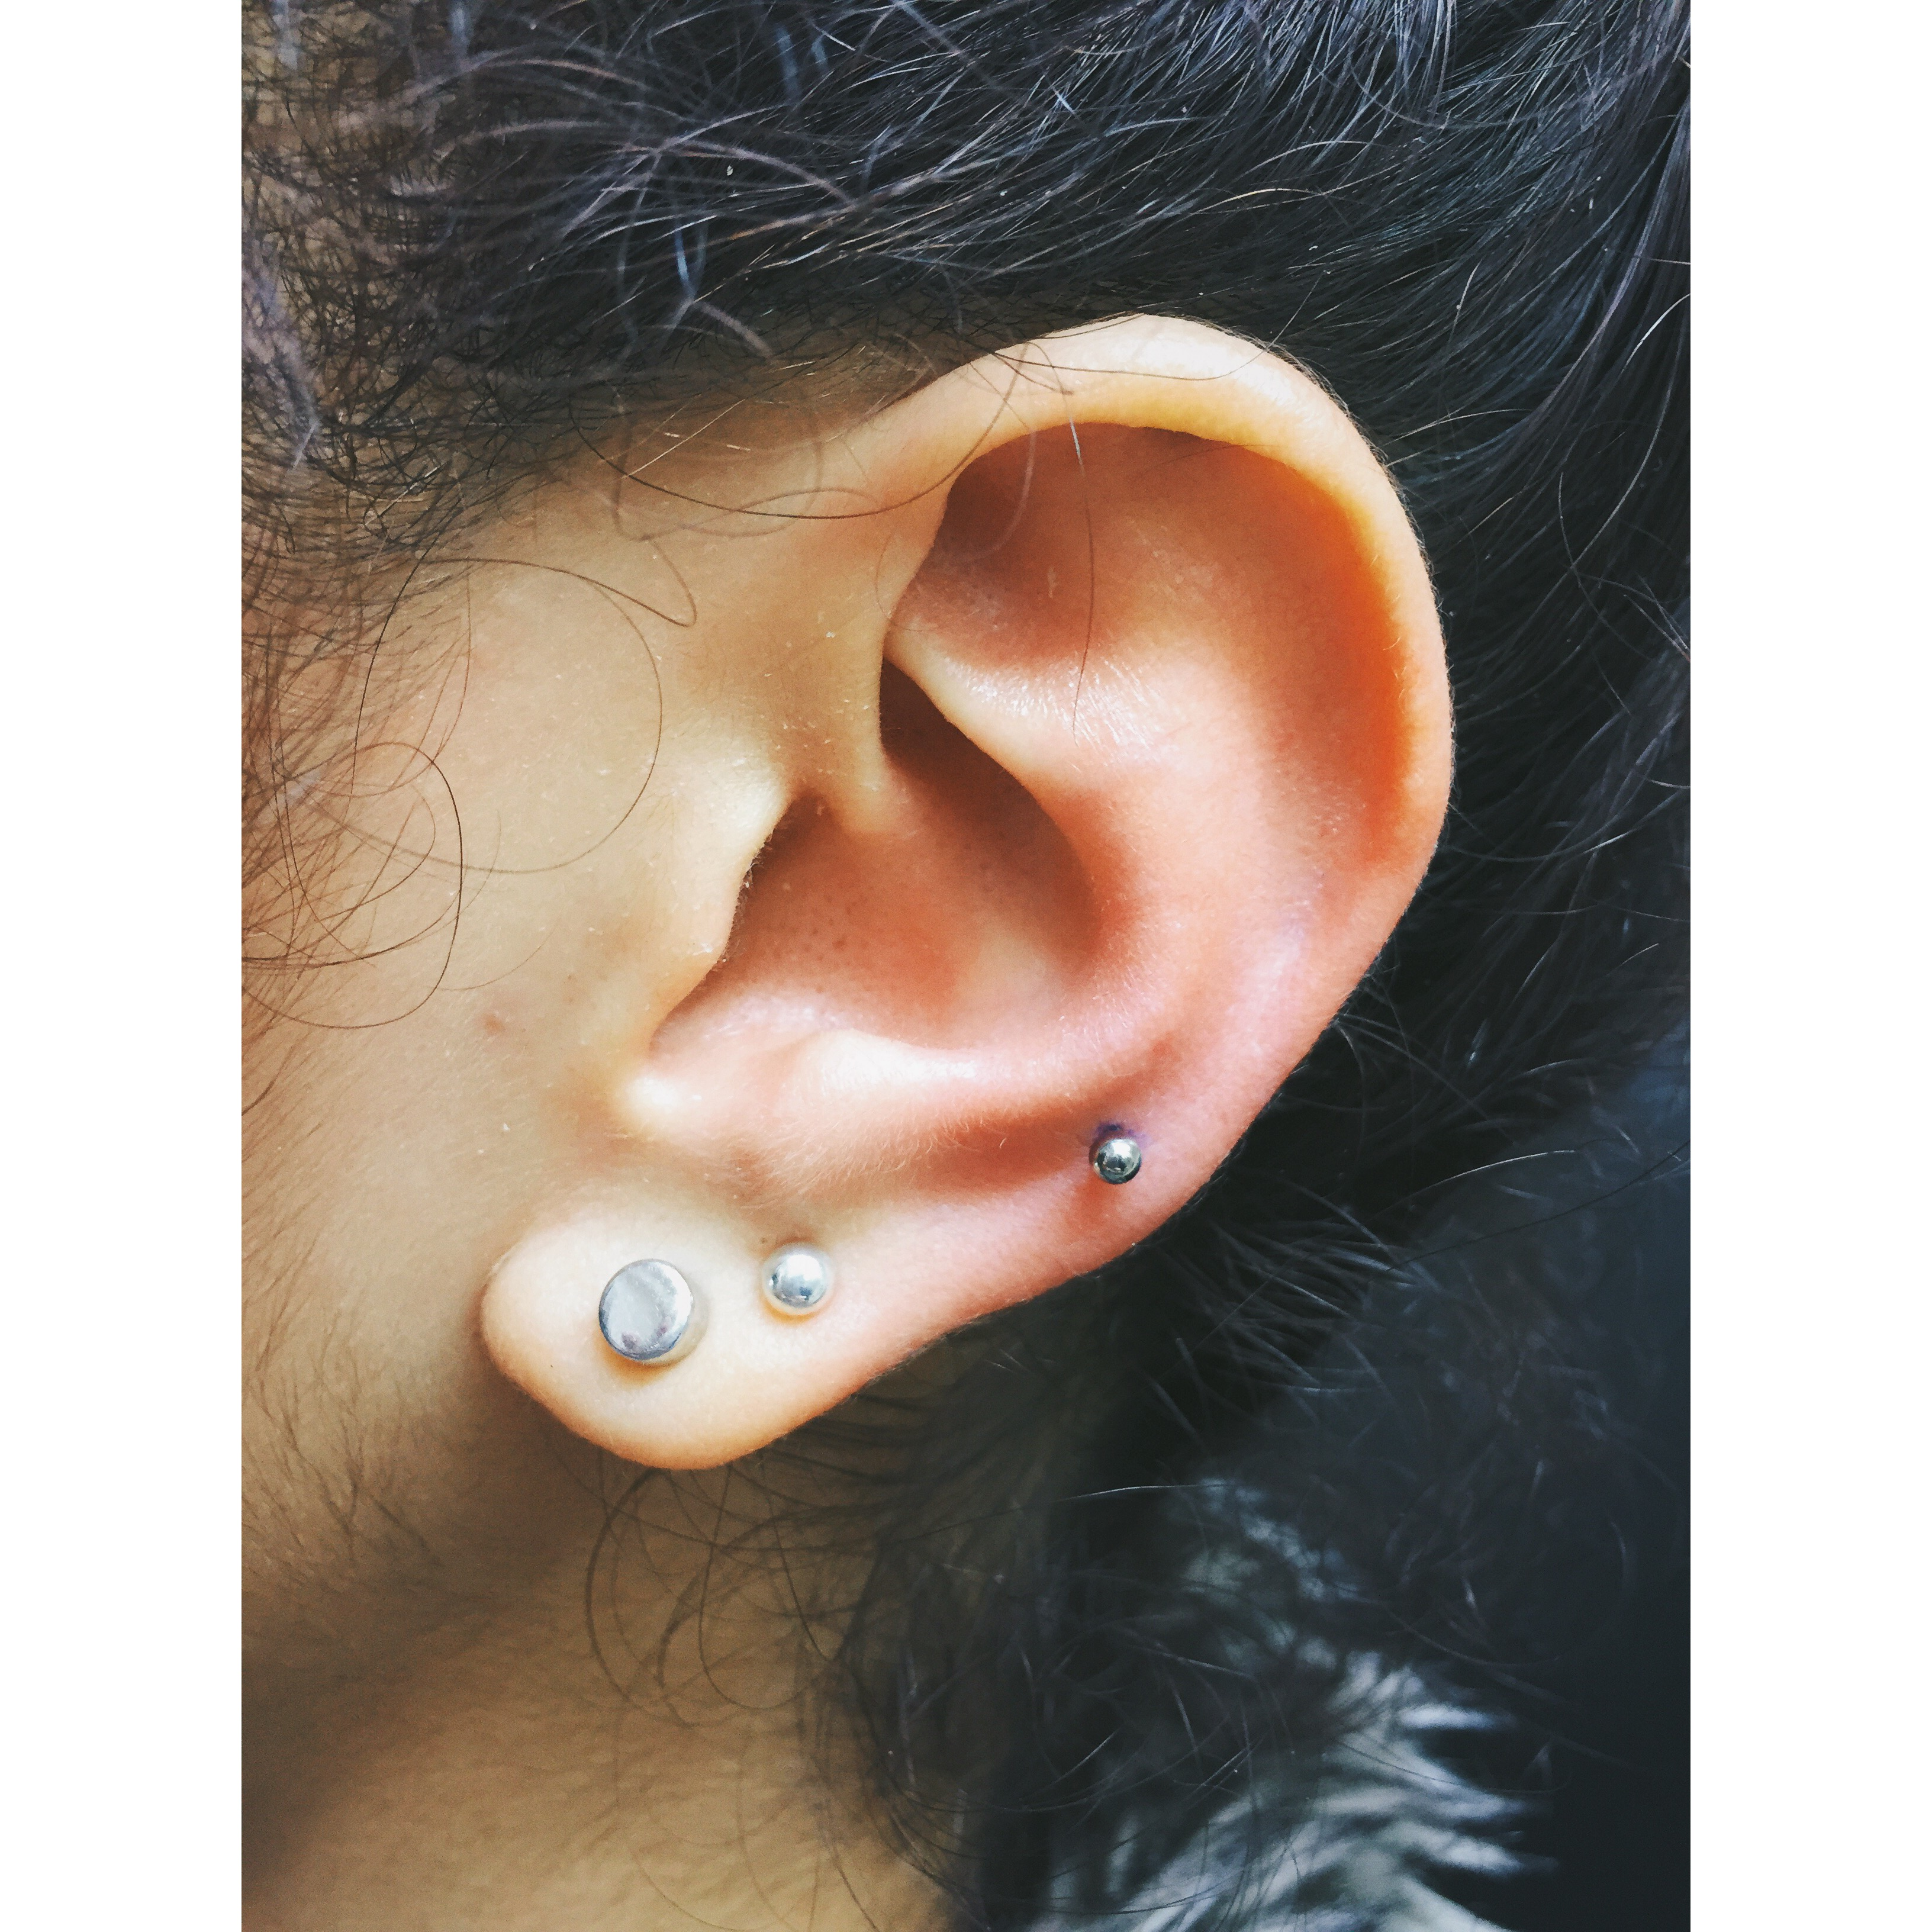 the ear tattoos for guys the ear tattoos meaning the ear tattoos pain the ear tattoos pros and cons ear tattoos hurt inner ear tattoos fade tattoo designs ear tattoos of ear Ear tattoo. Cartilage piercing I .